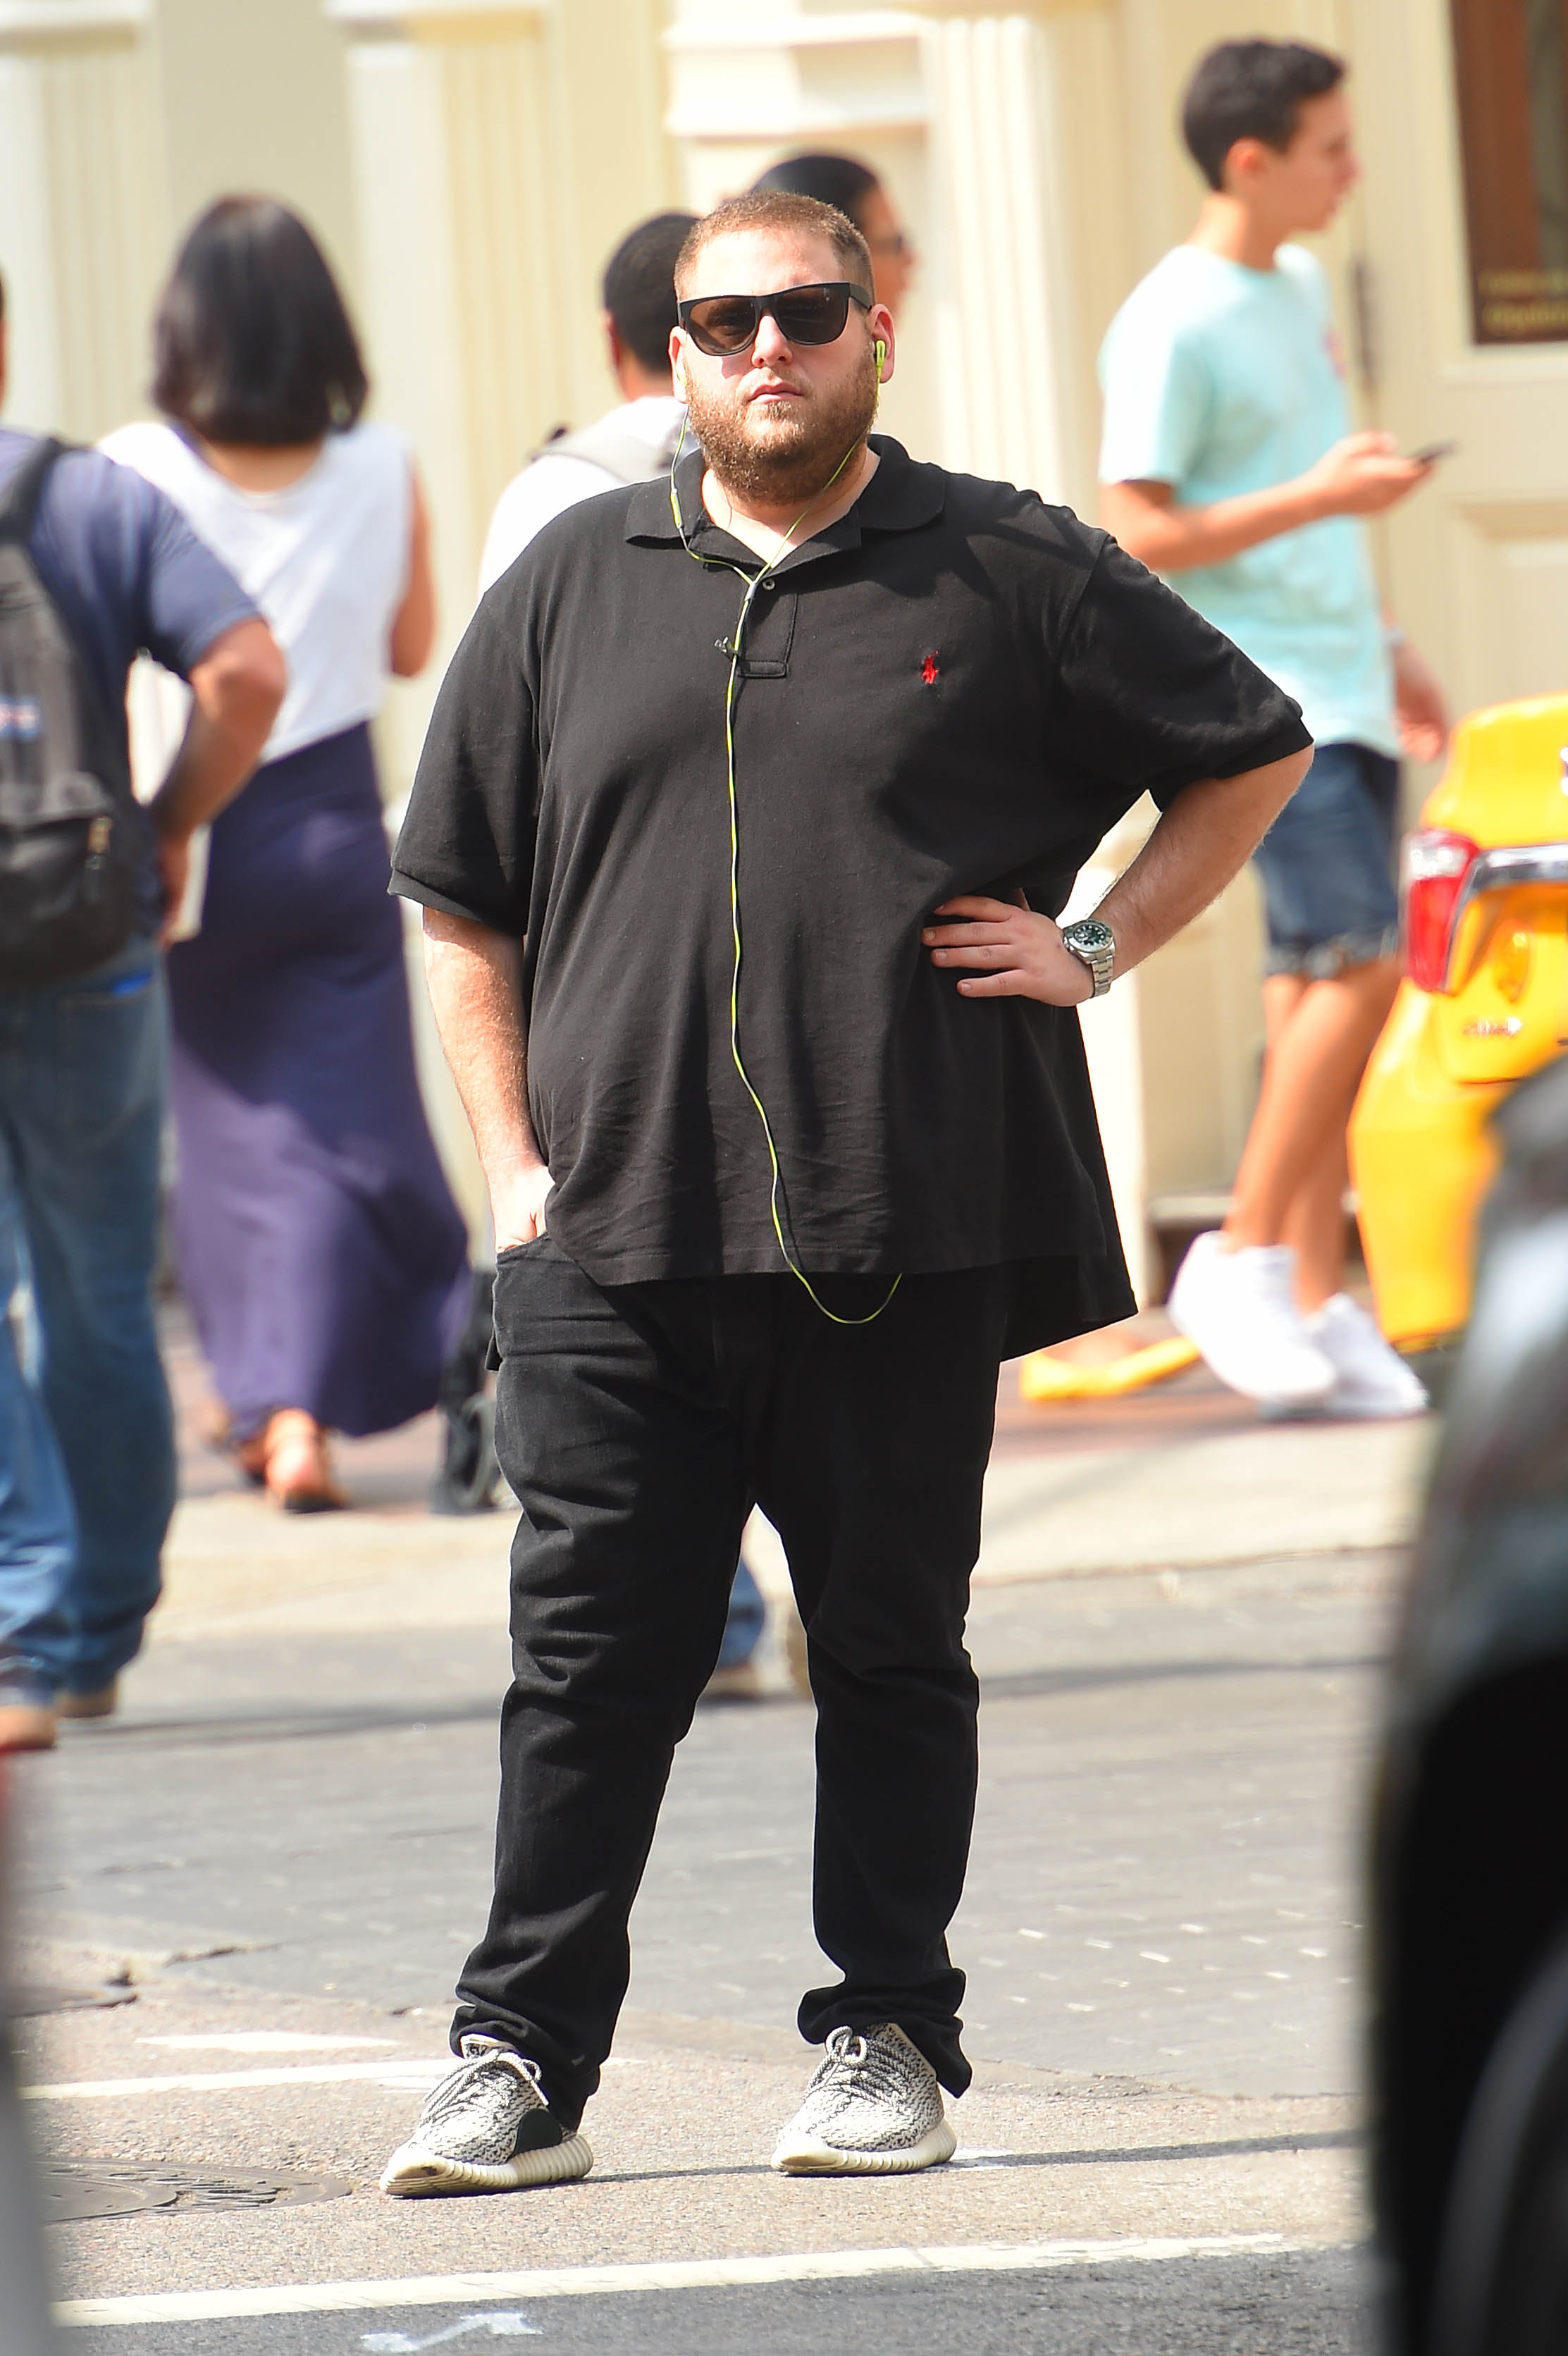 Out and about in Manhattan, Hill doesn't seem too pleased by the summer heat.